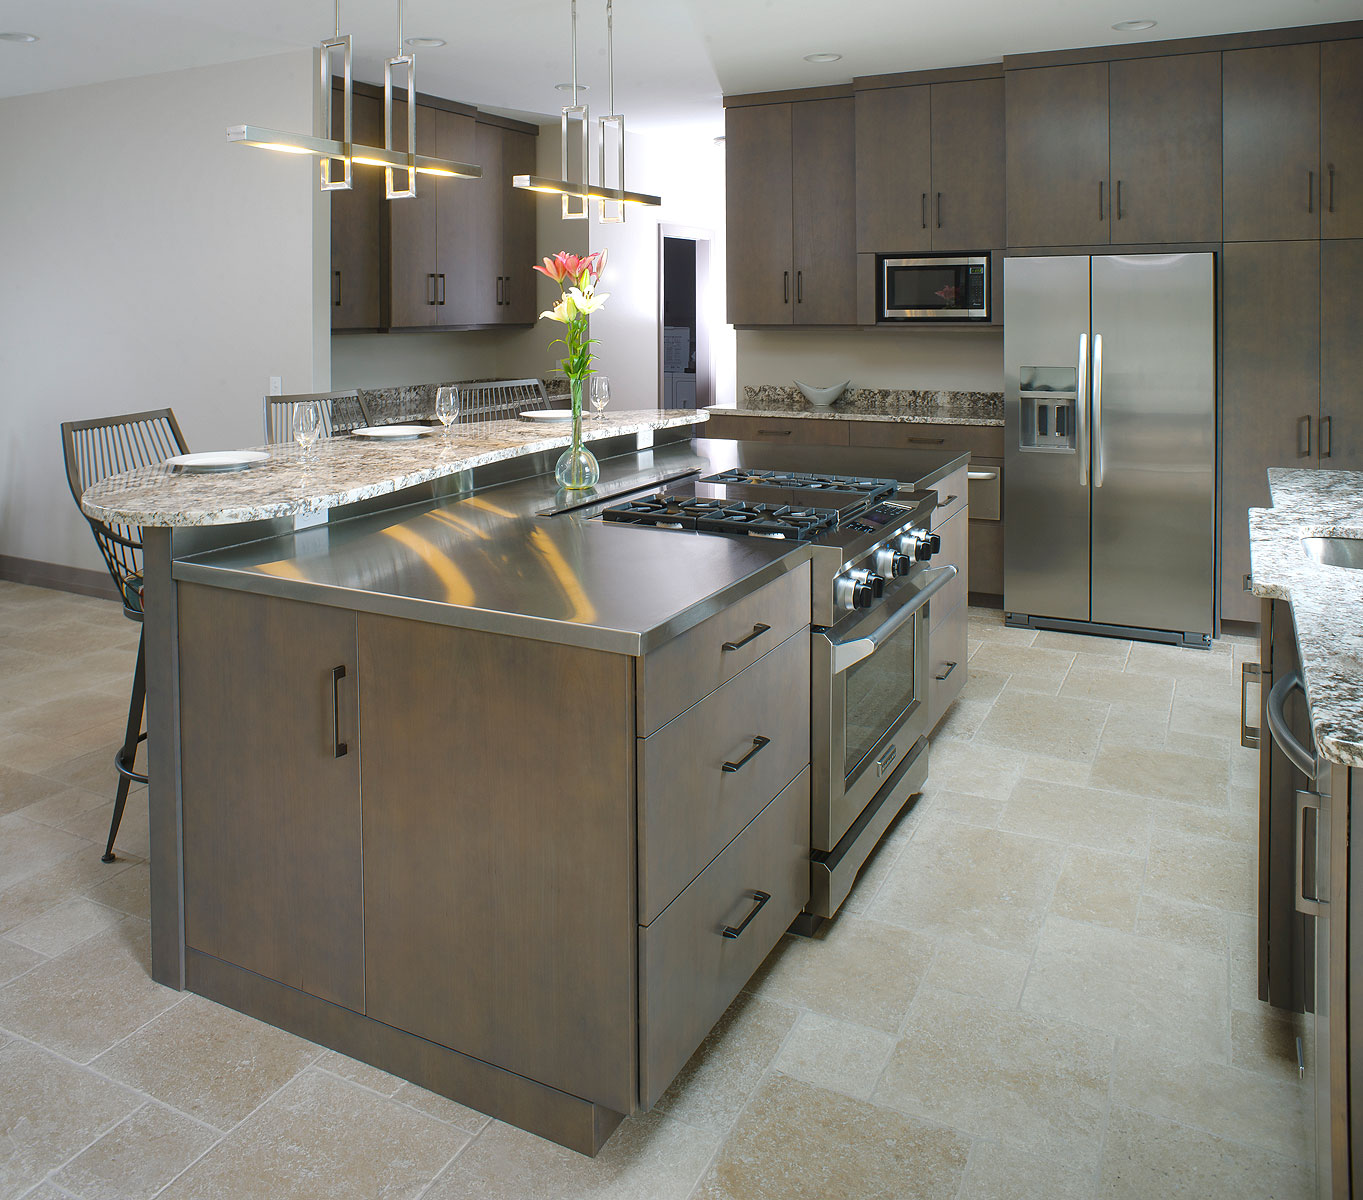 Contemporary Kitchen Counters: Contemporary Kitchen With Stainless And Granite Countertops